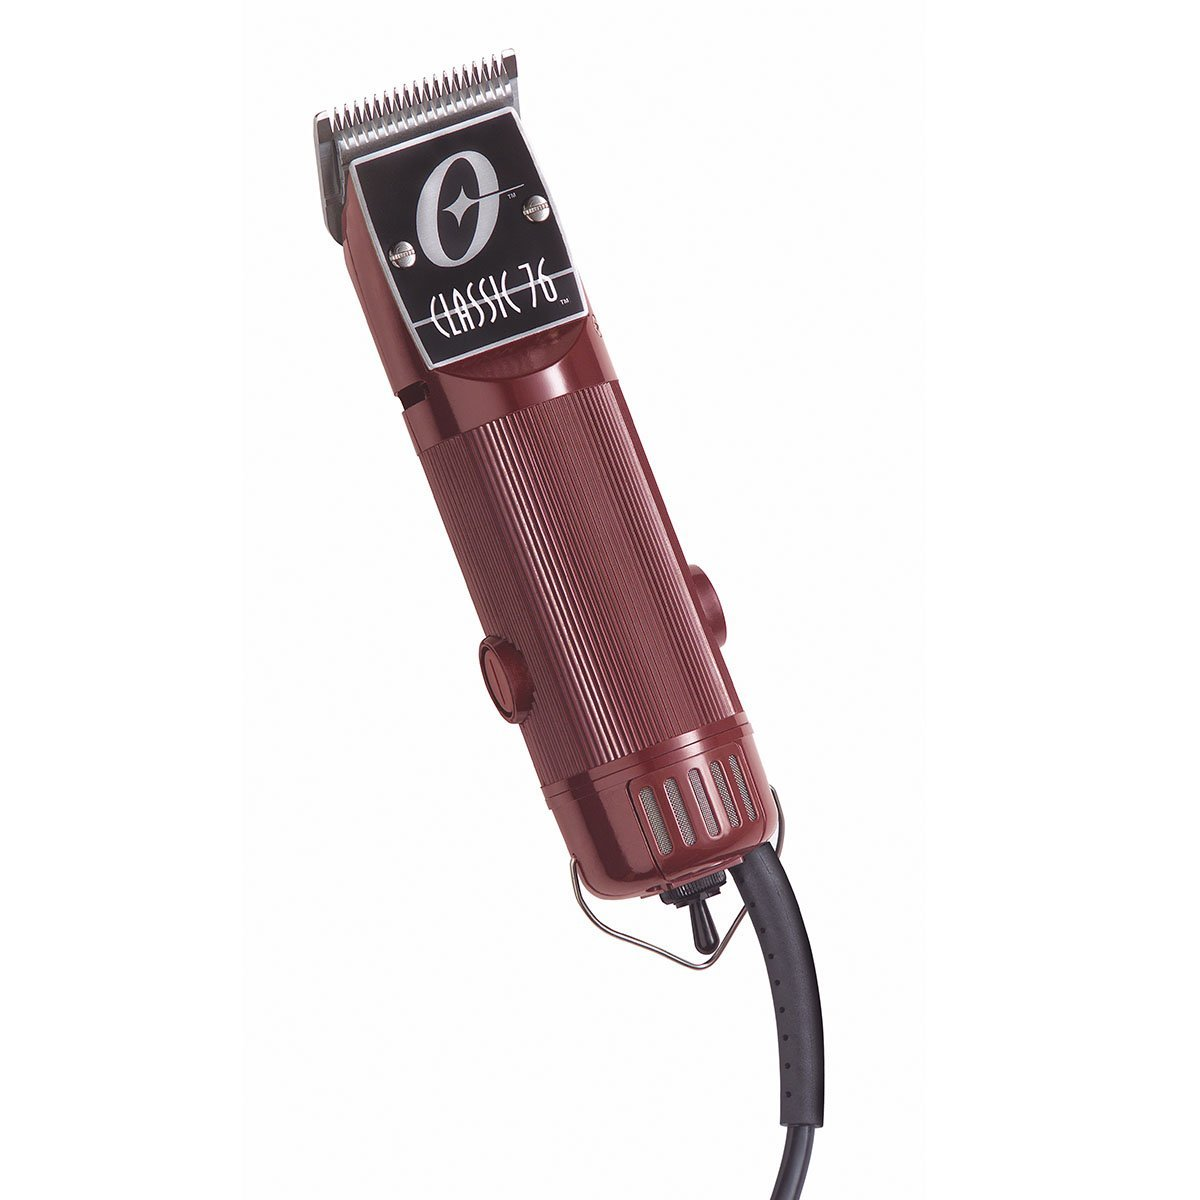 Oster ''LIMITED CLASSIC 76 EDITION'' Hair Clippers with UNBREAKABLE Valox Material and BONUS FREE OldSpice Body Spray Included